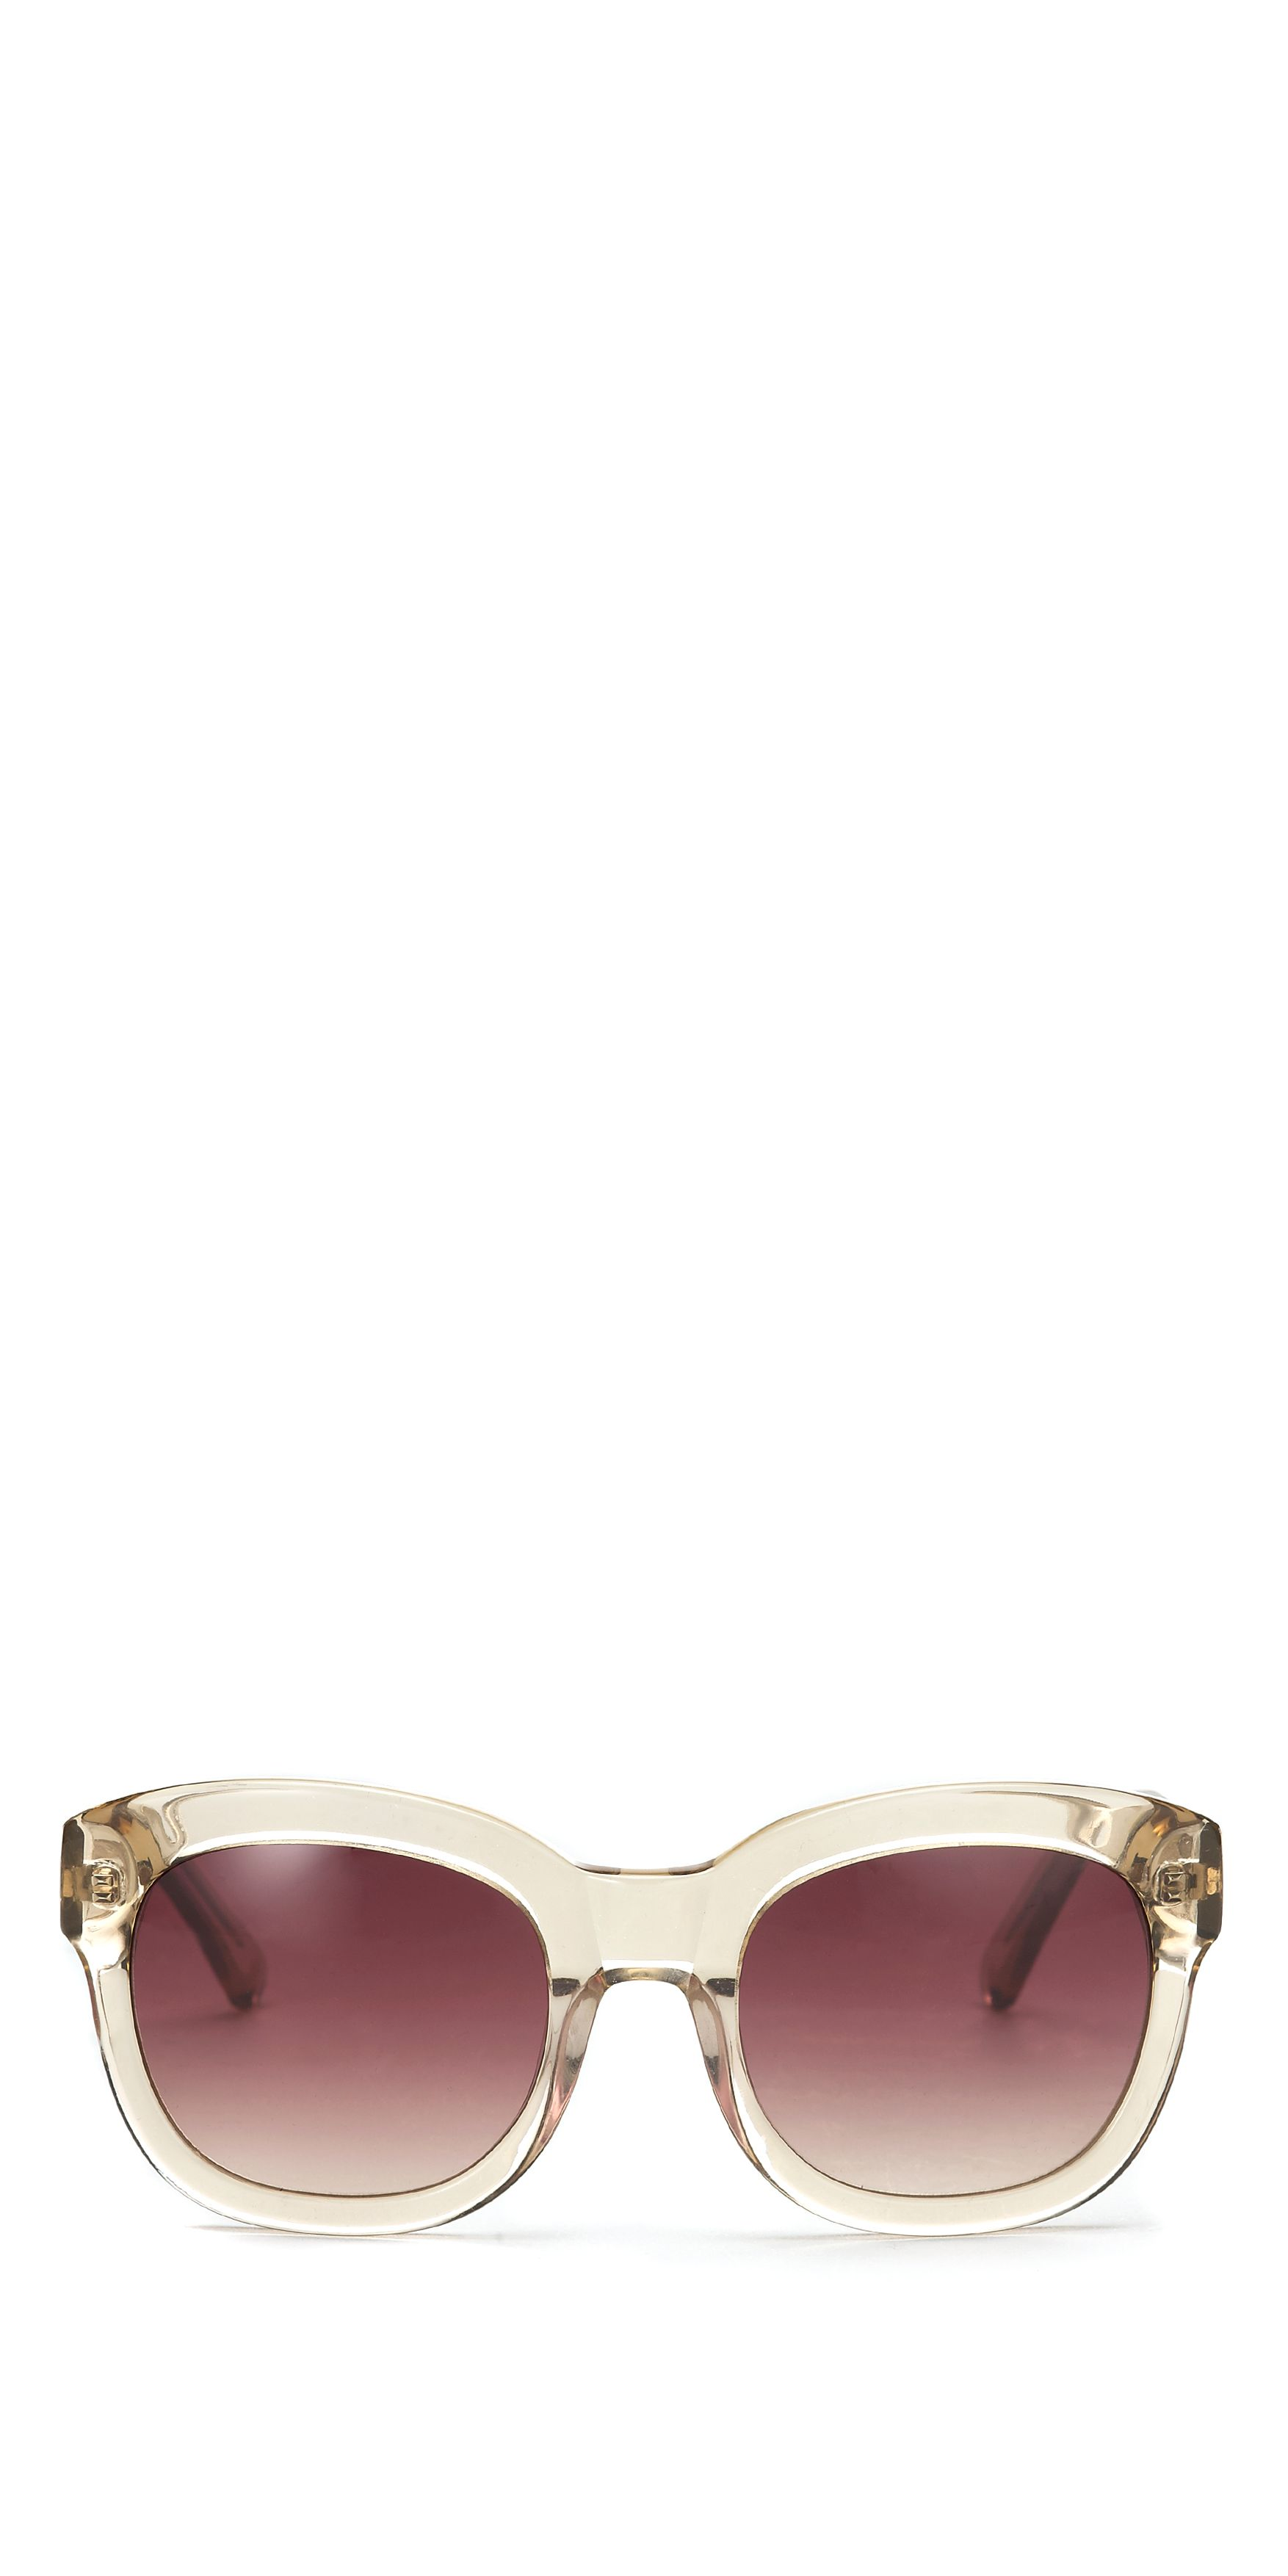 Ali heavy frame sunglasses